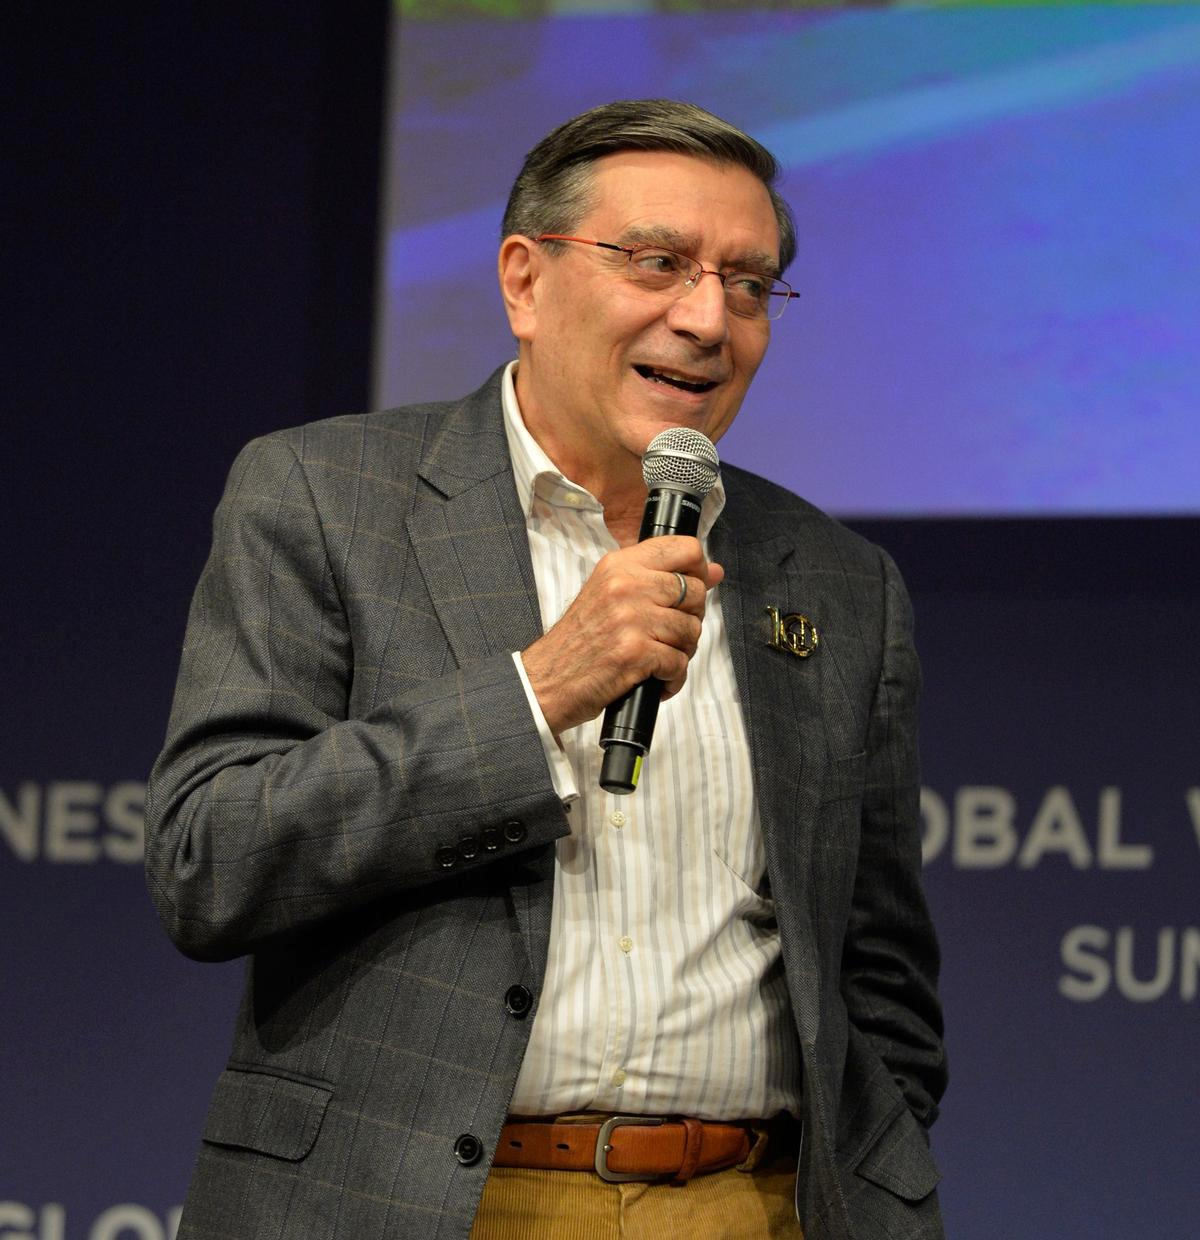 Dr Gerry Bodeker will co-chair the Global Wellness Summit 2017